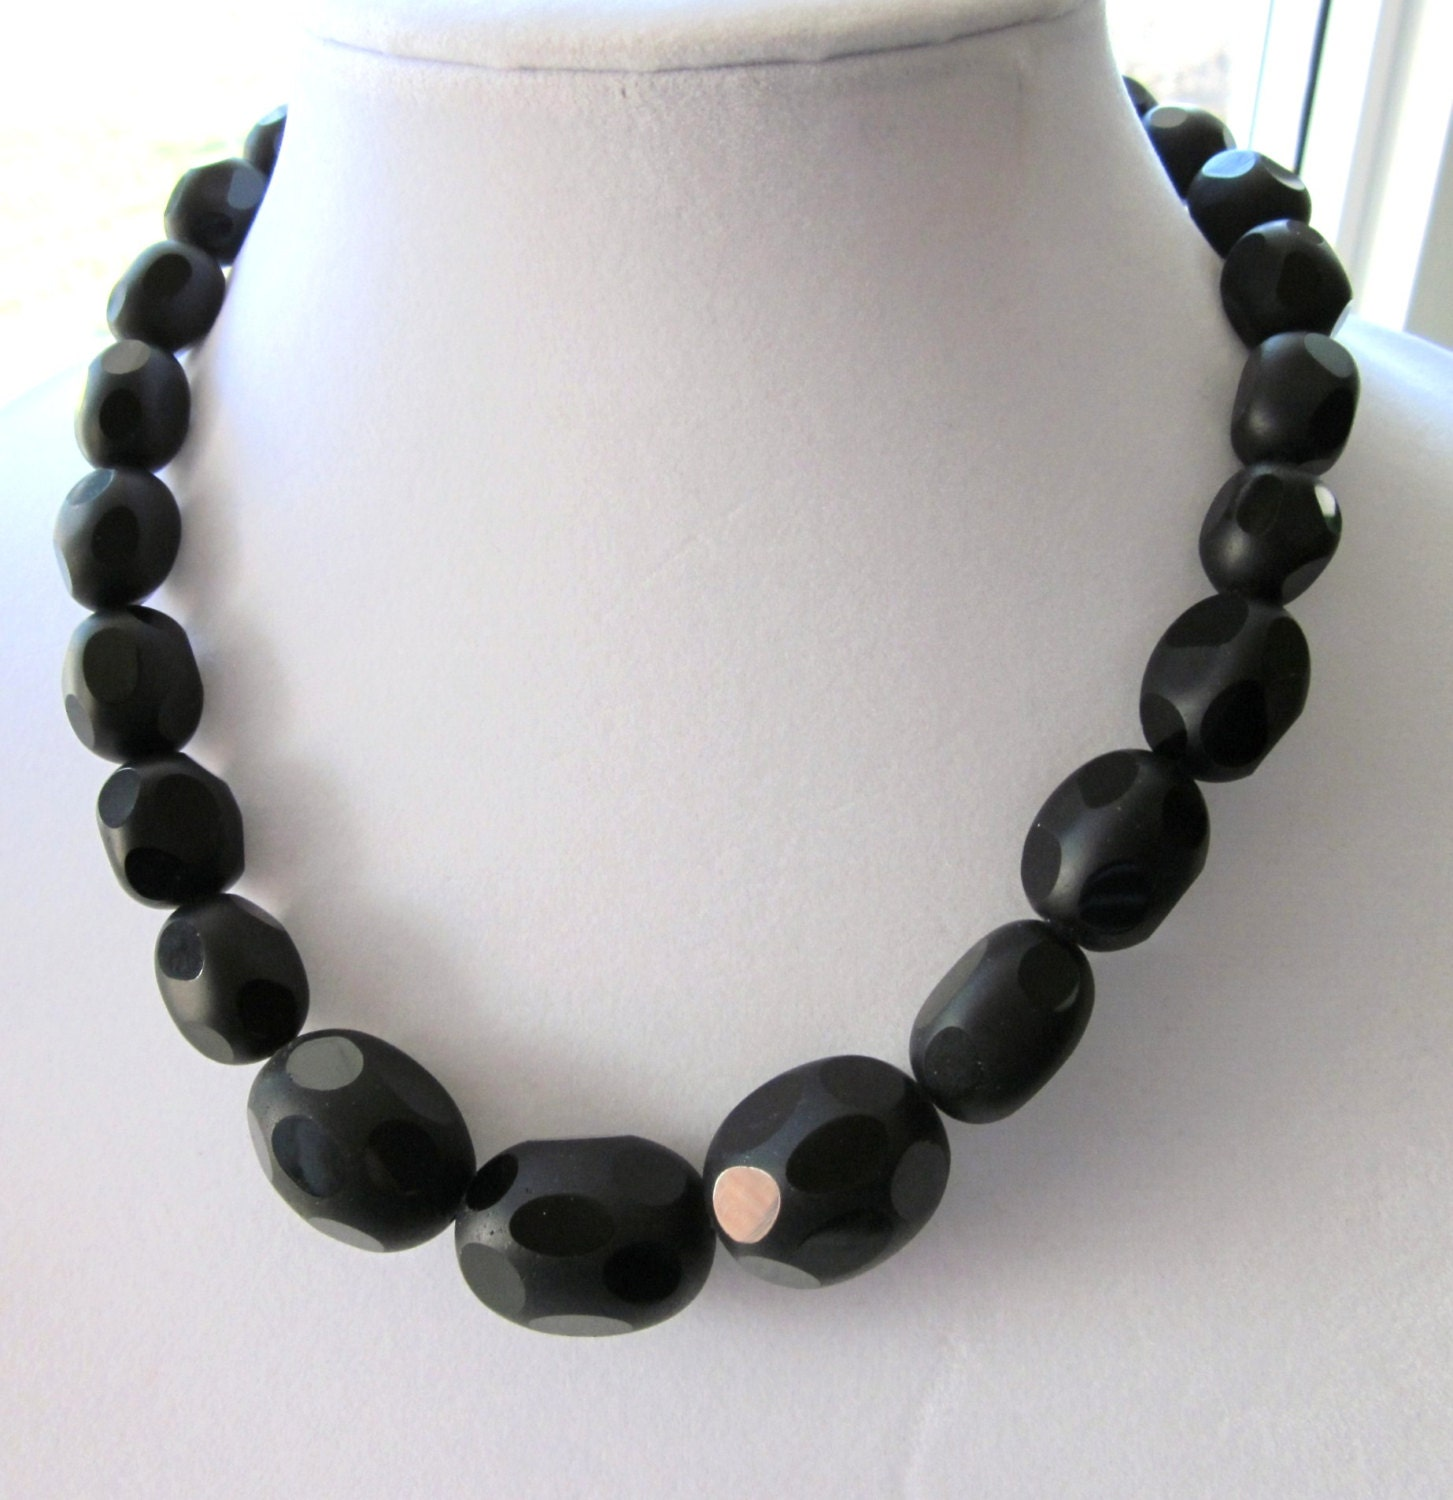 black obsidian necklace madmen inspired necklace by